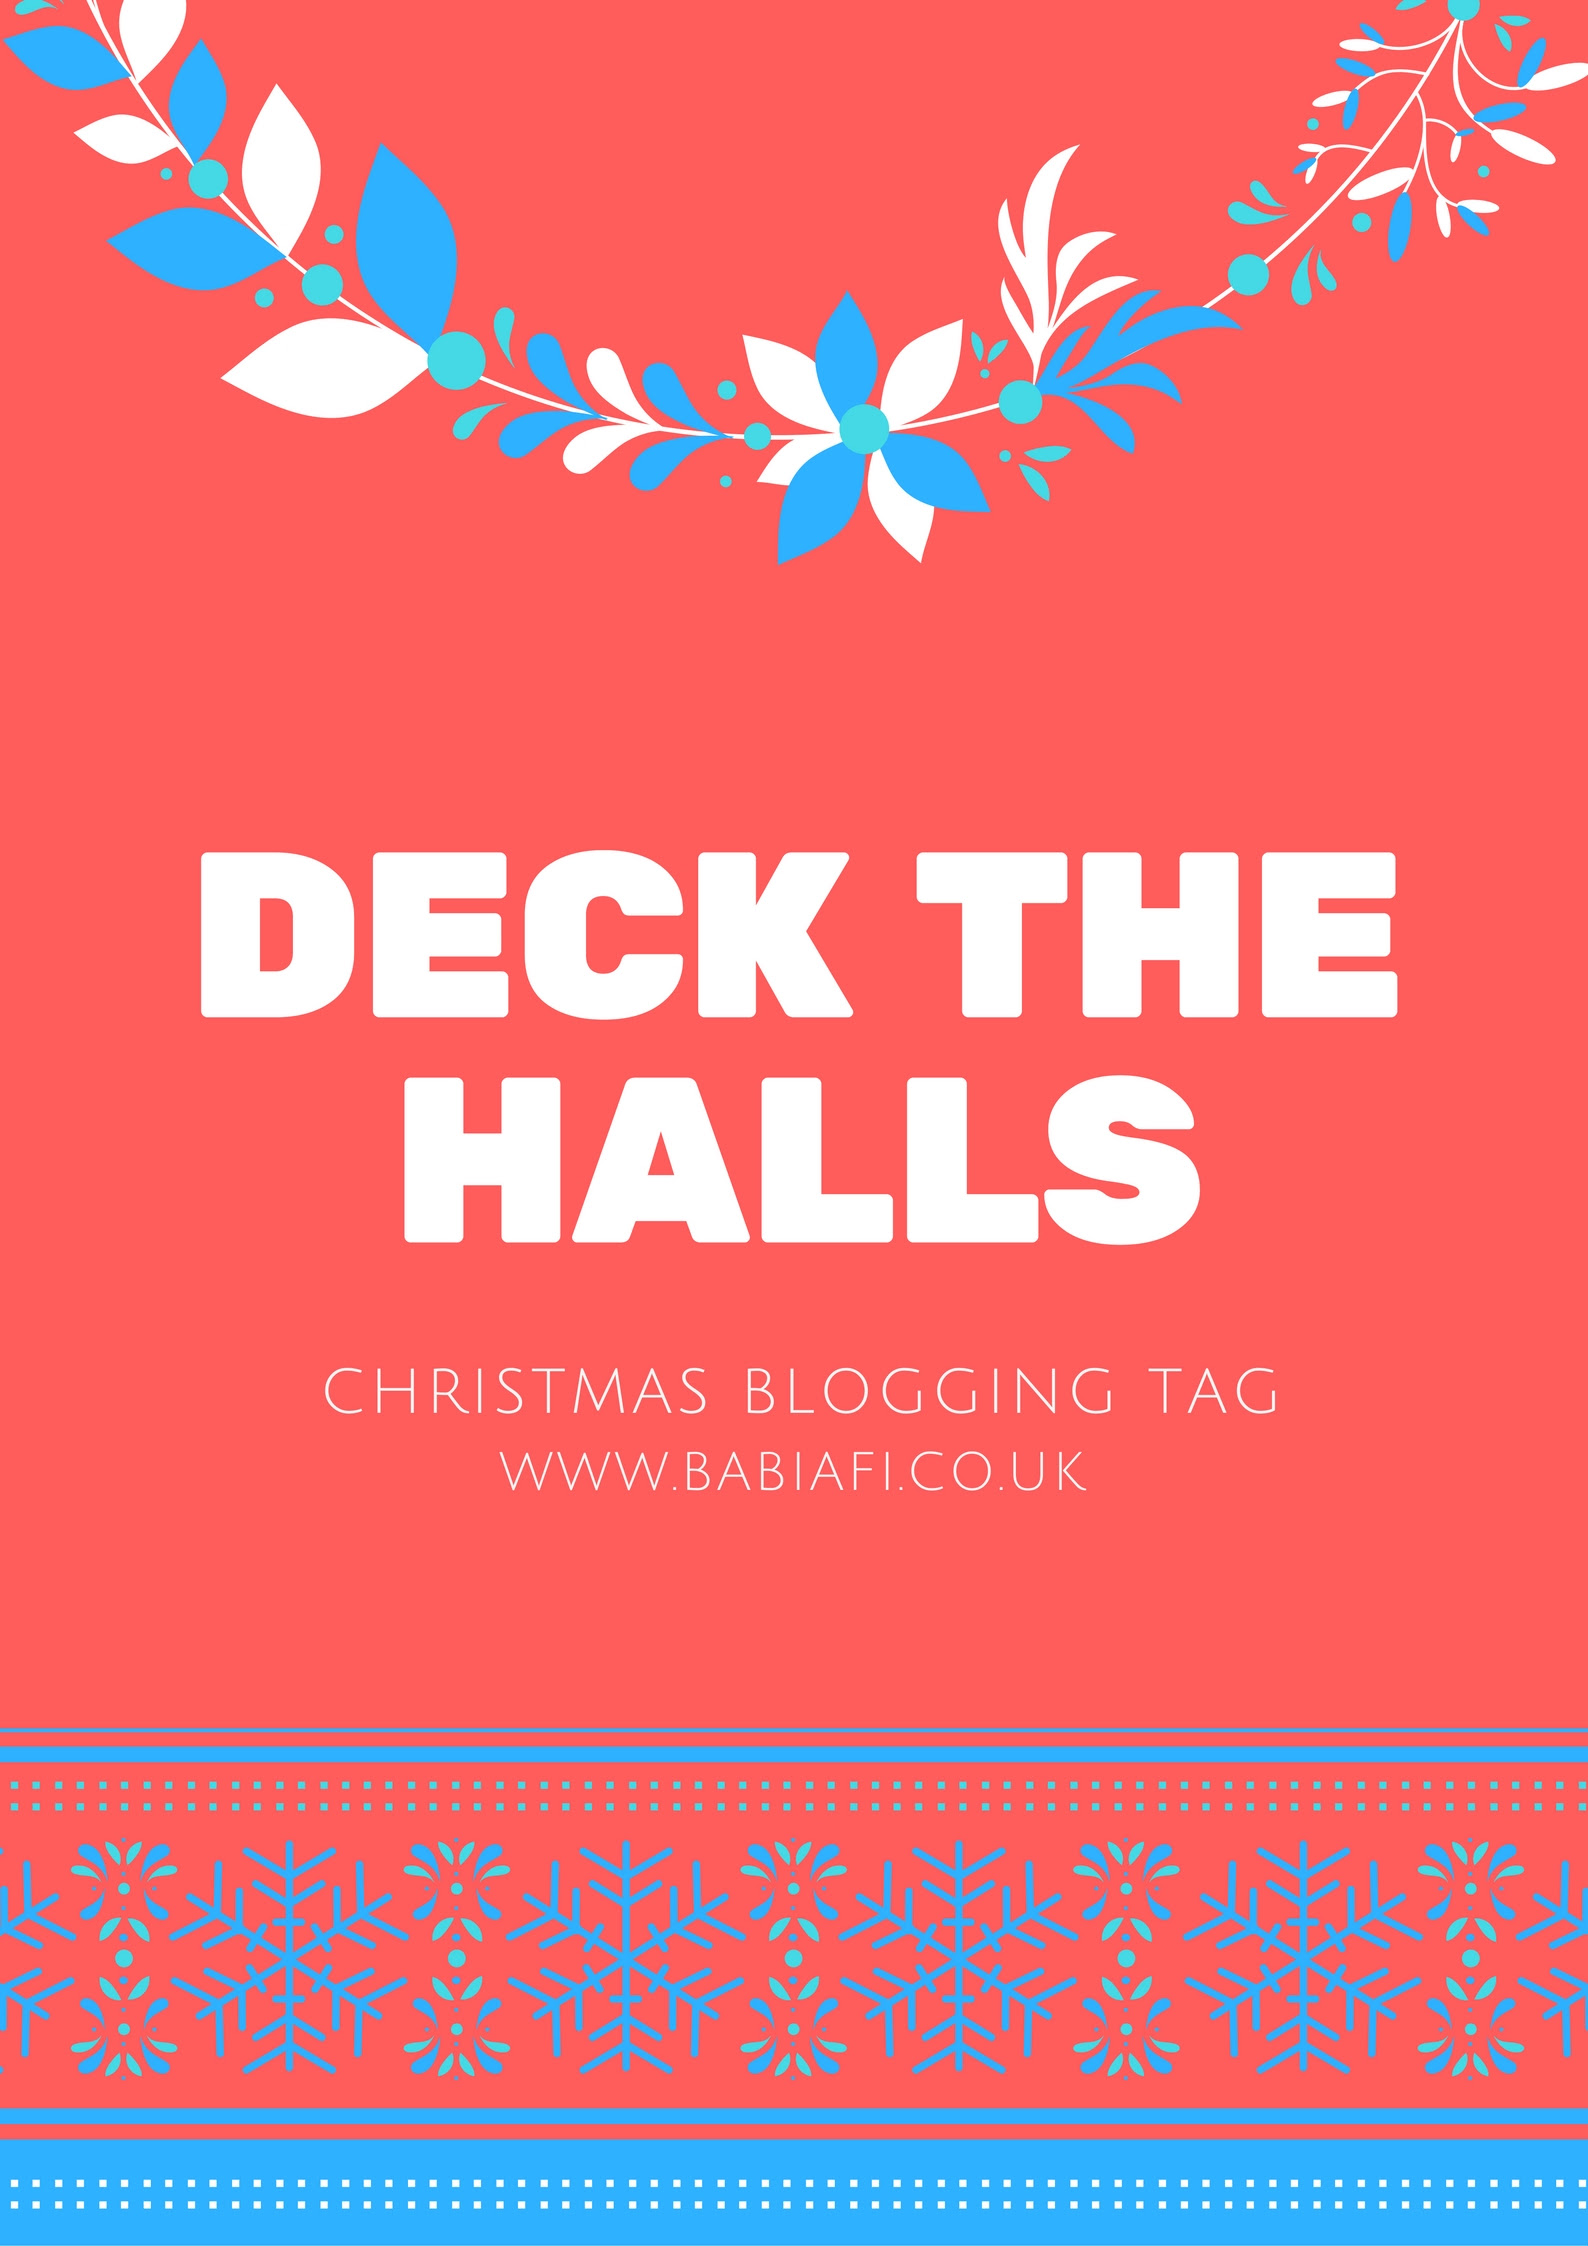 Deck the Halls Christmas Blogging Tag